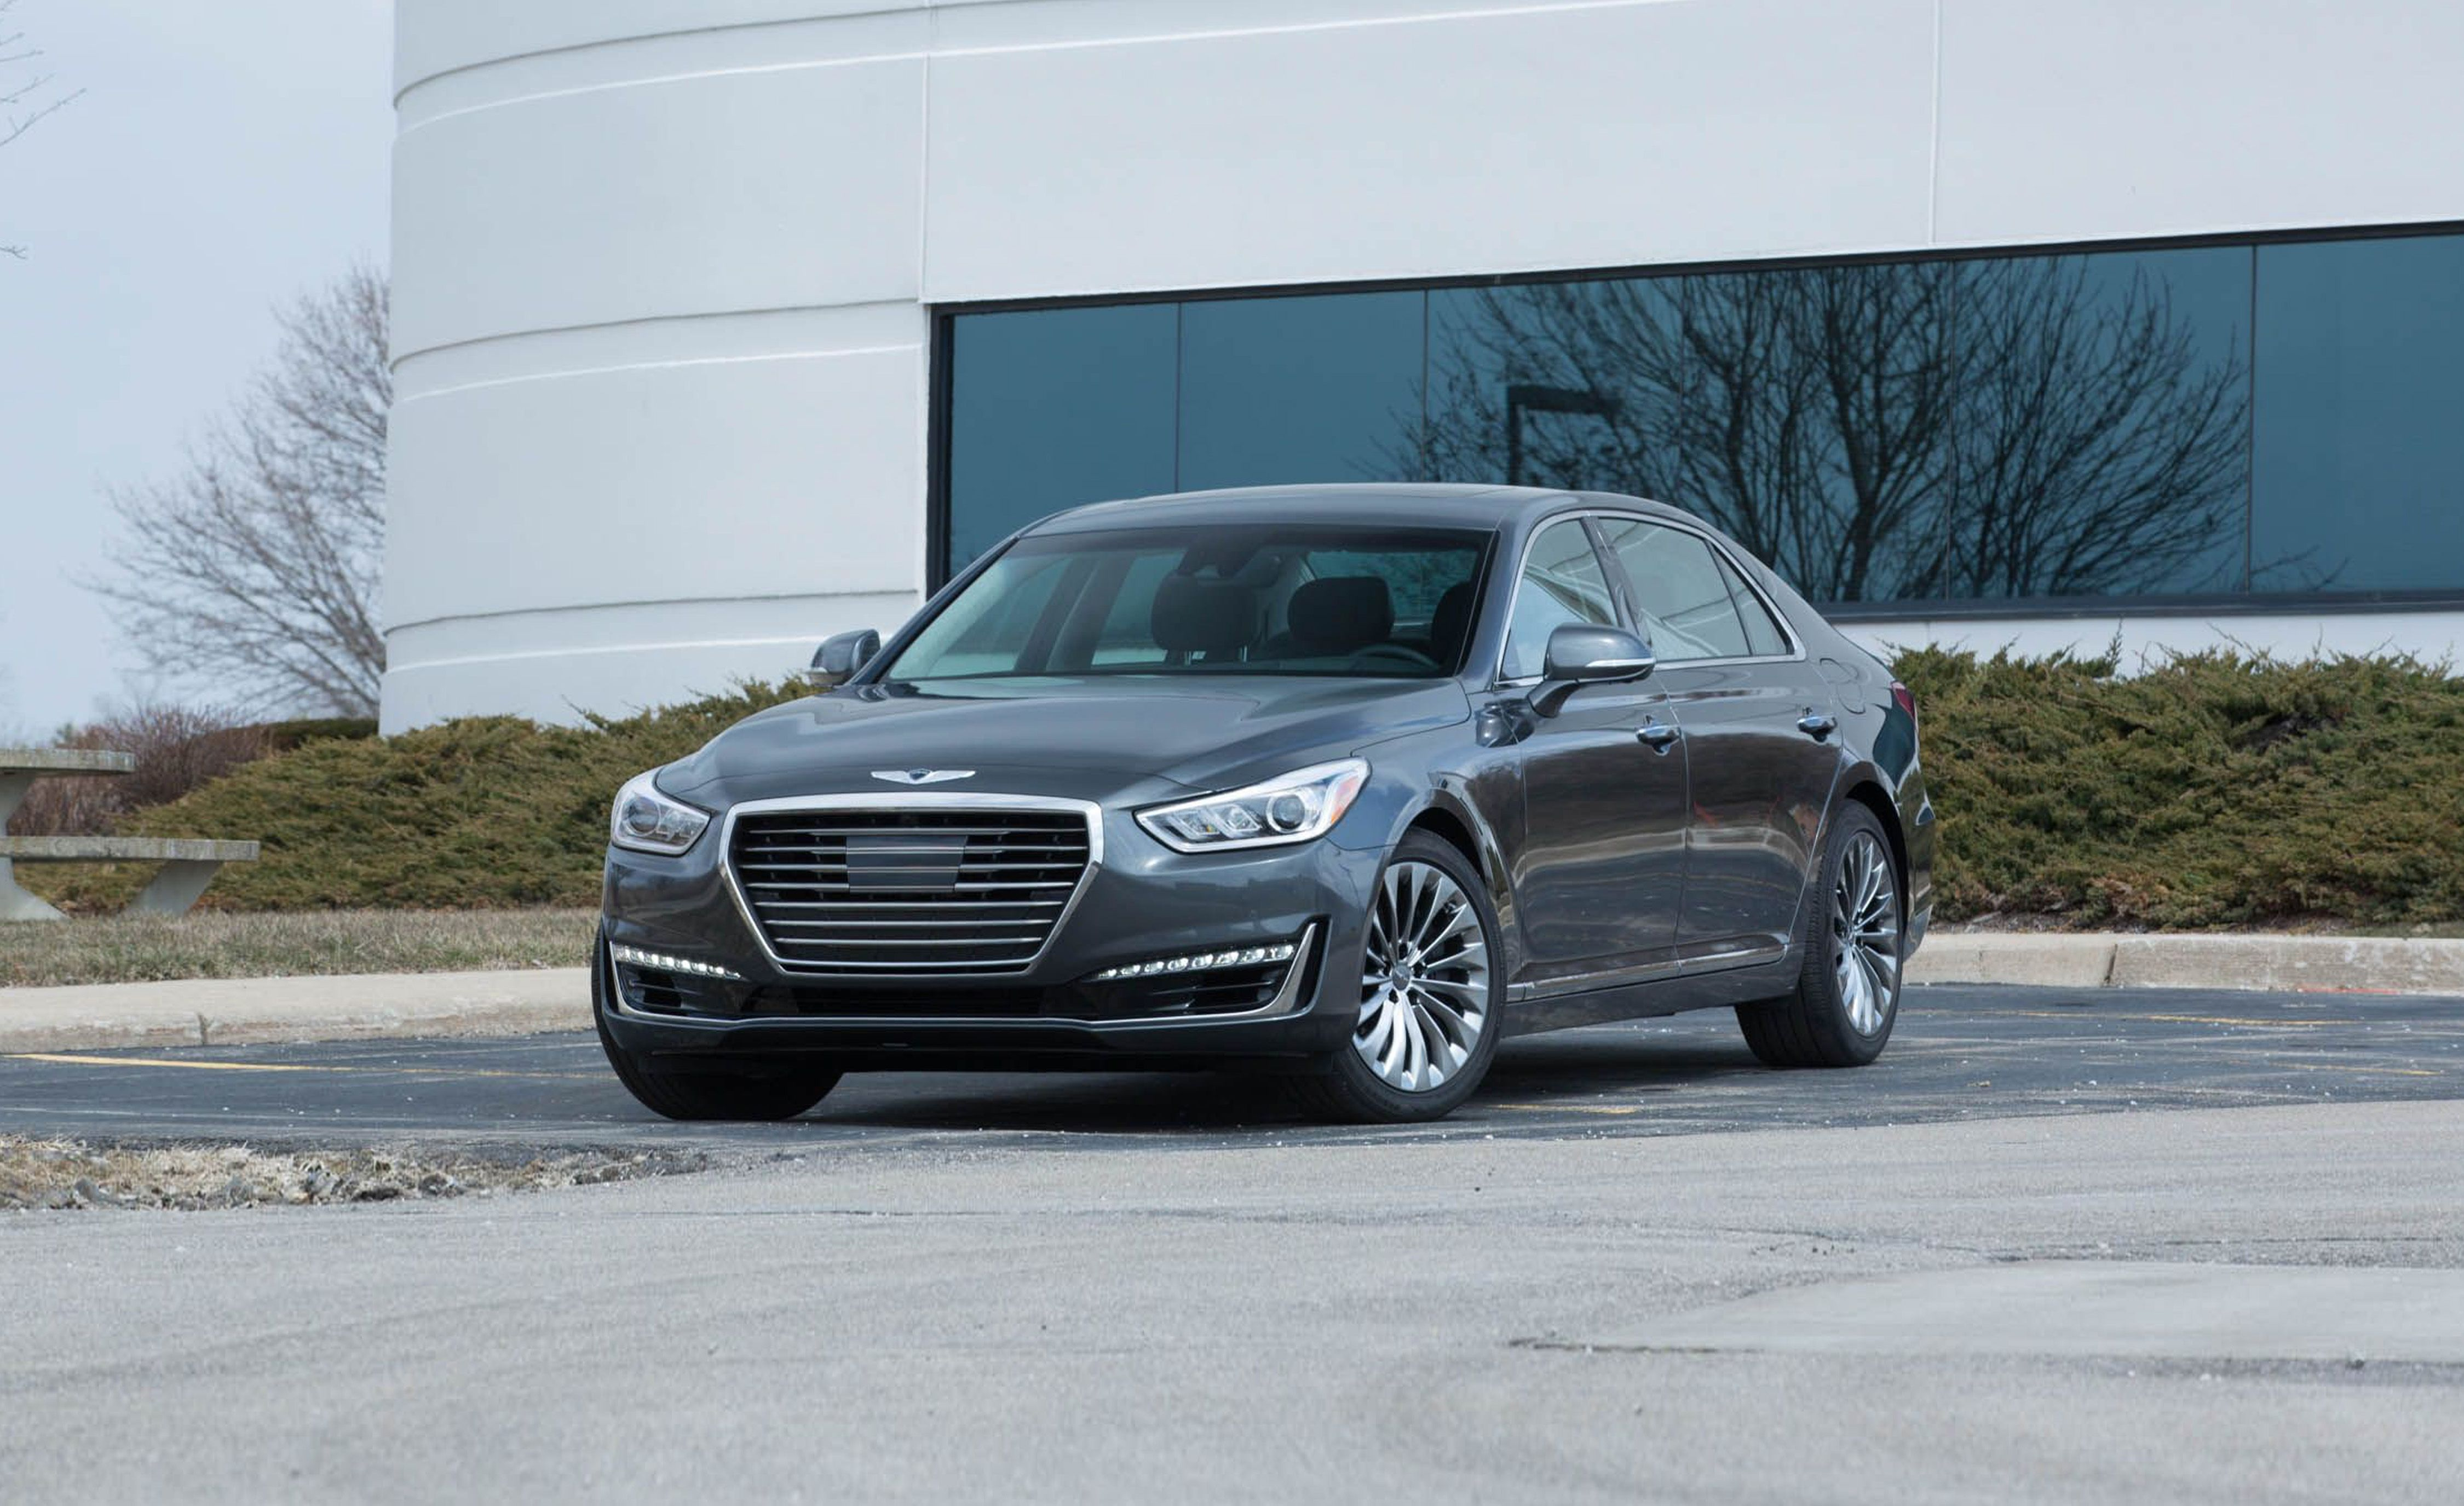 Hyundai Genesis G90 accessories model